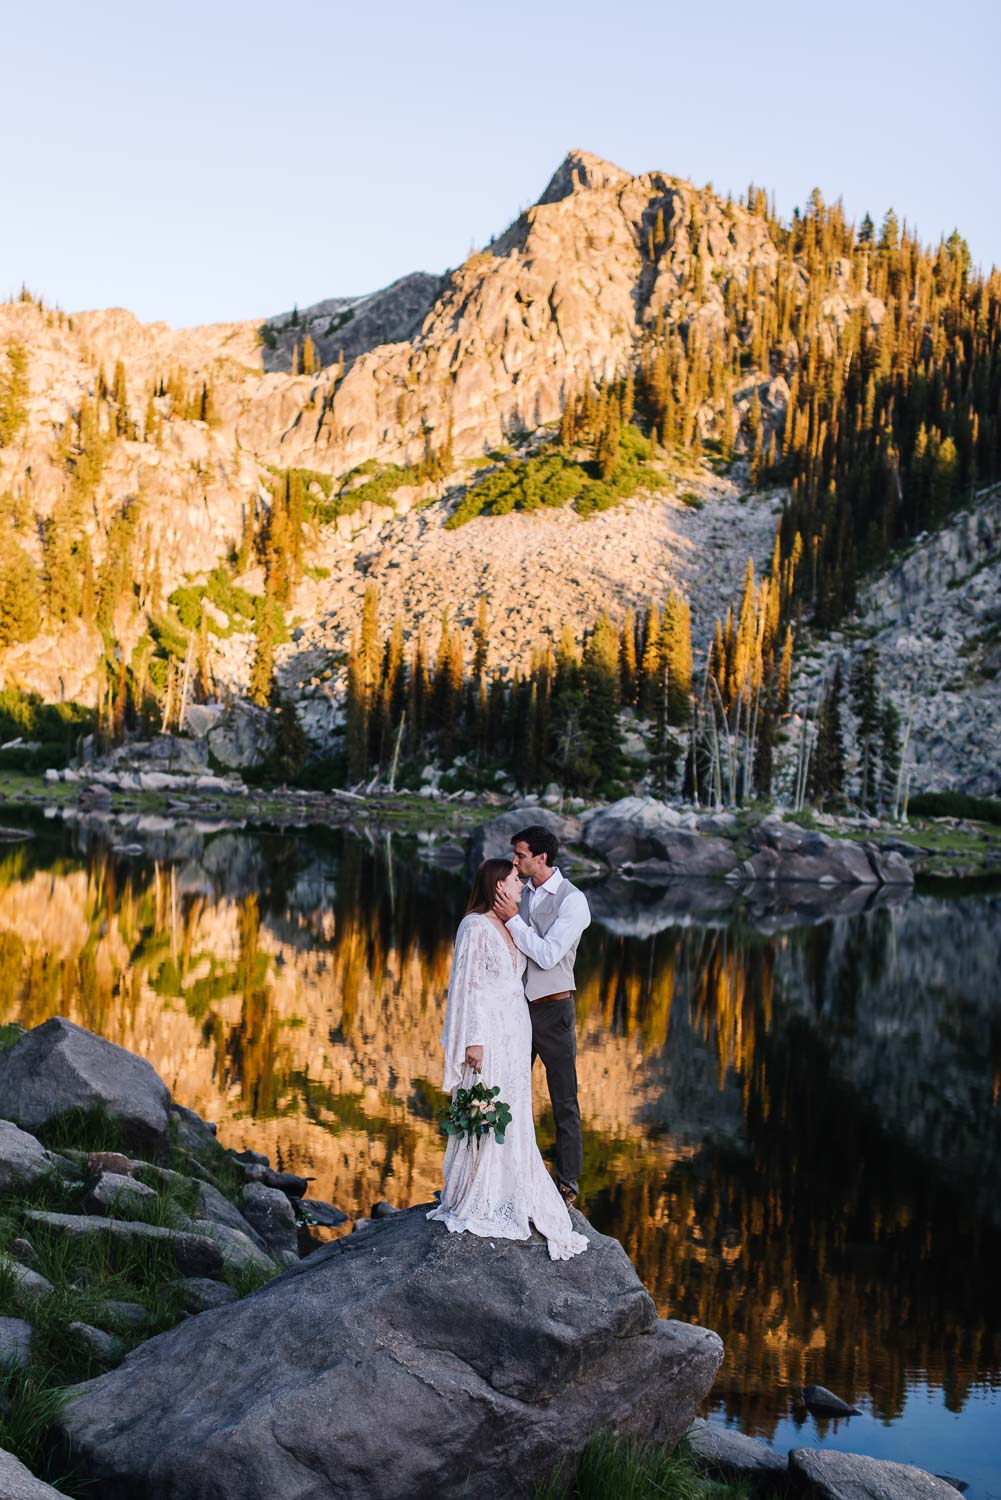 Louie Lake is an adventurous wedding venue in McCall Idaho. Couple standing on rock with Jughandle Mountain behind them and reflecting on the lake.